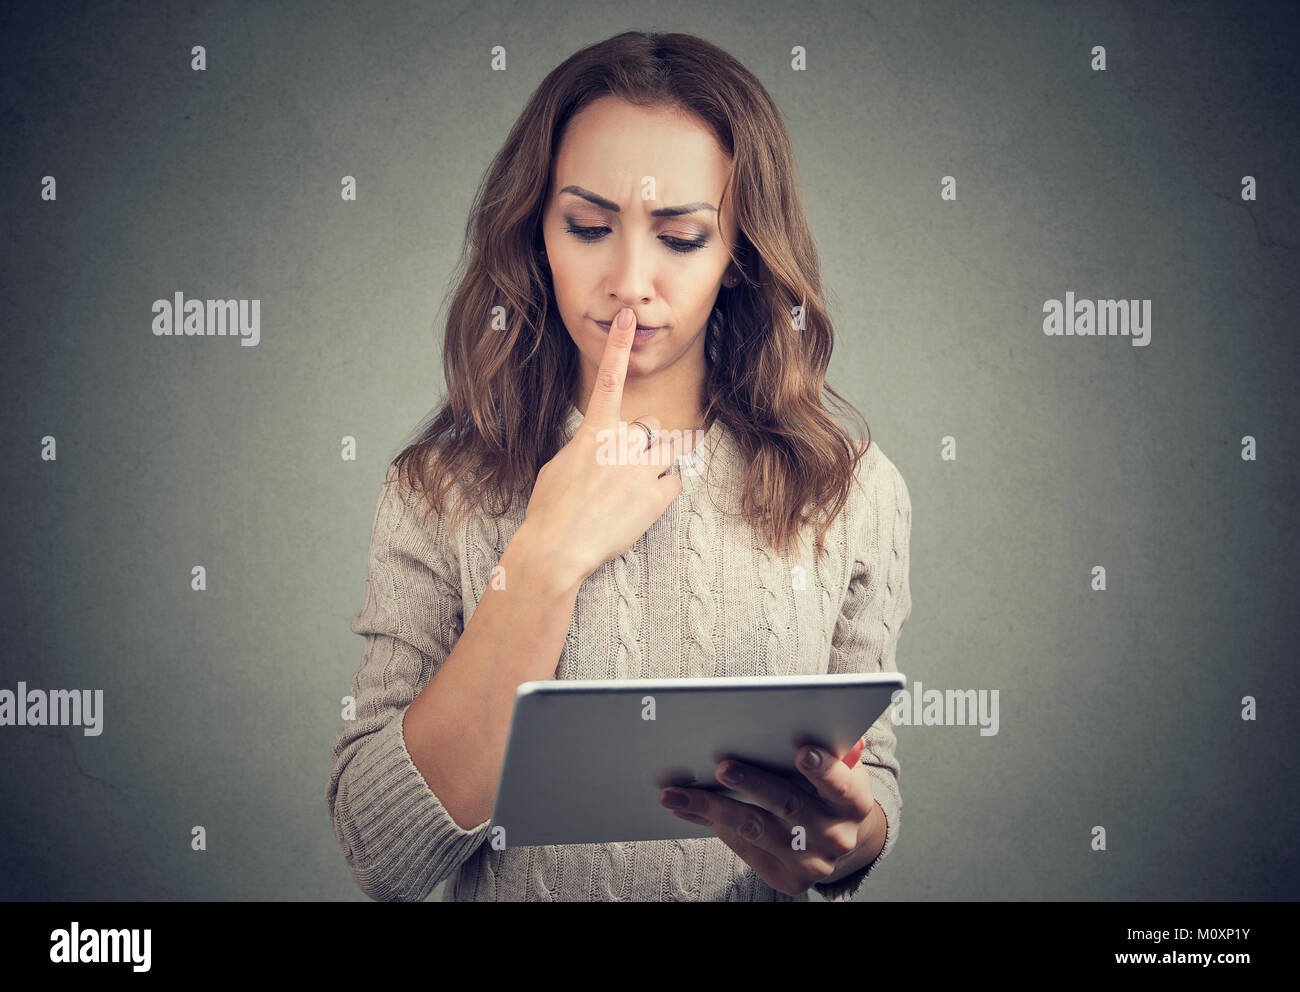 Young casual woman watching tablet and looking puzzled touching lips. - Stock Image